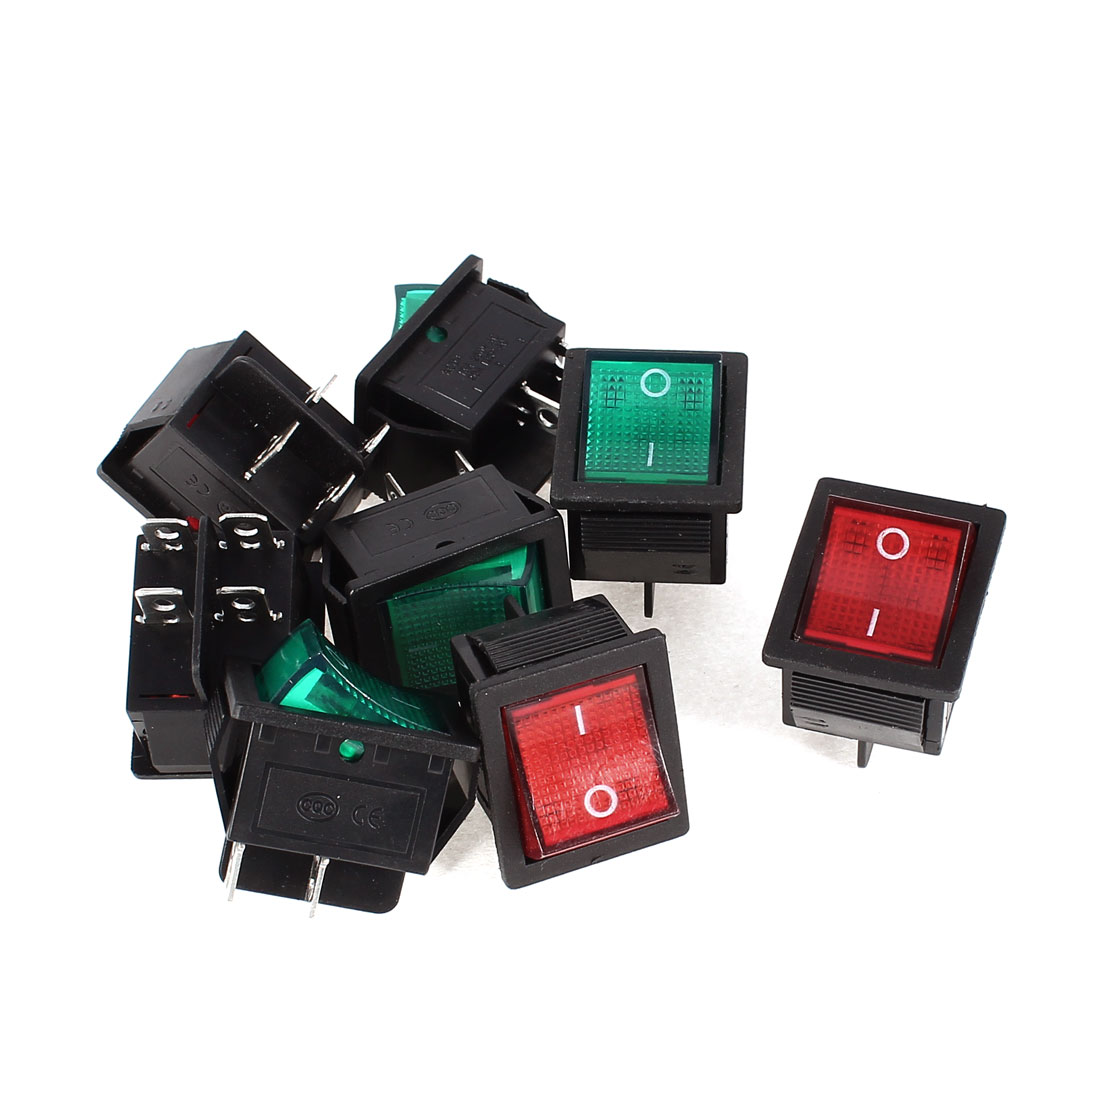 8 Pcs KCD4 DPST 4Pin On/Off Snap in Panel Mount Rocker Switch Green Red Light AC 15A/250V 20A/125V